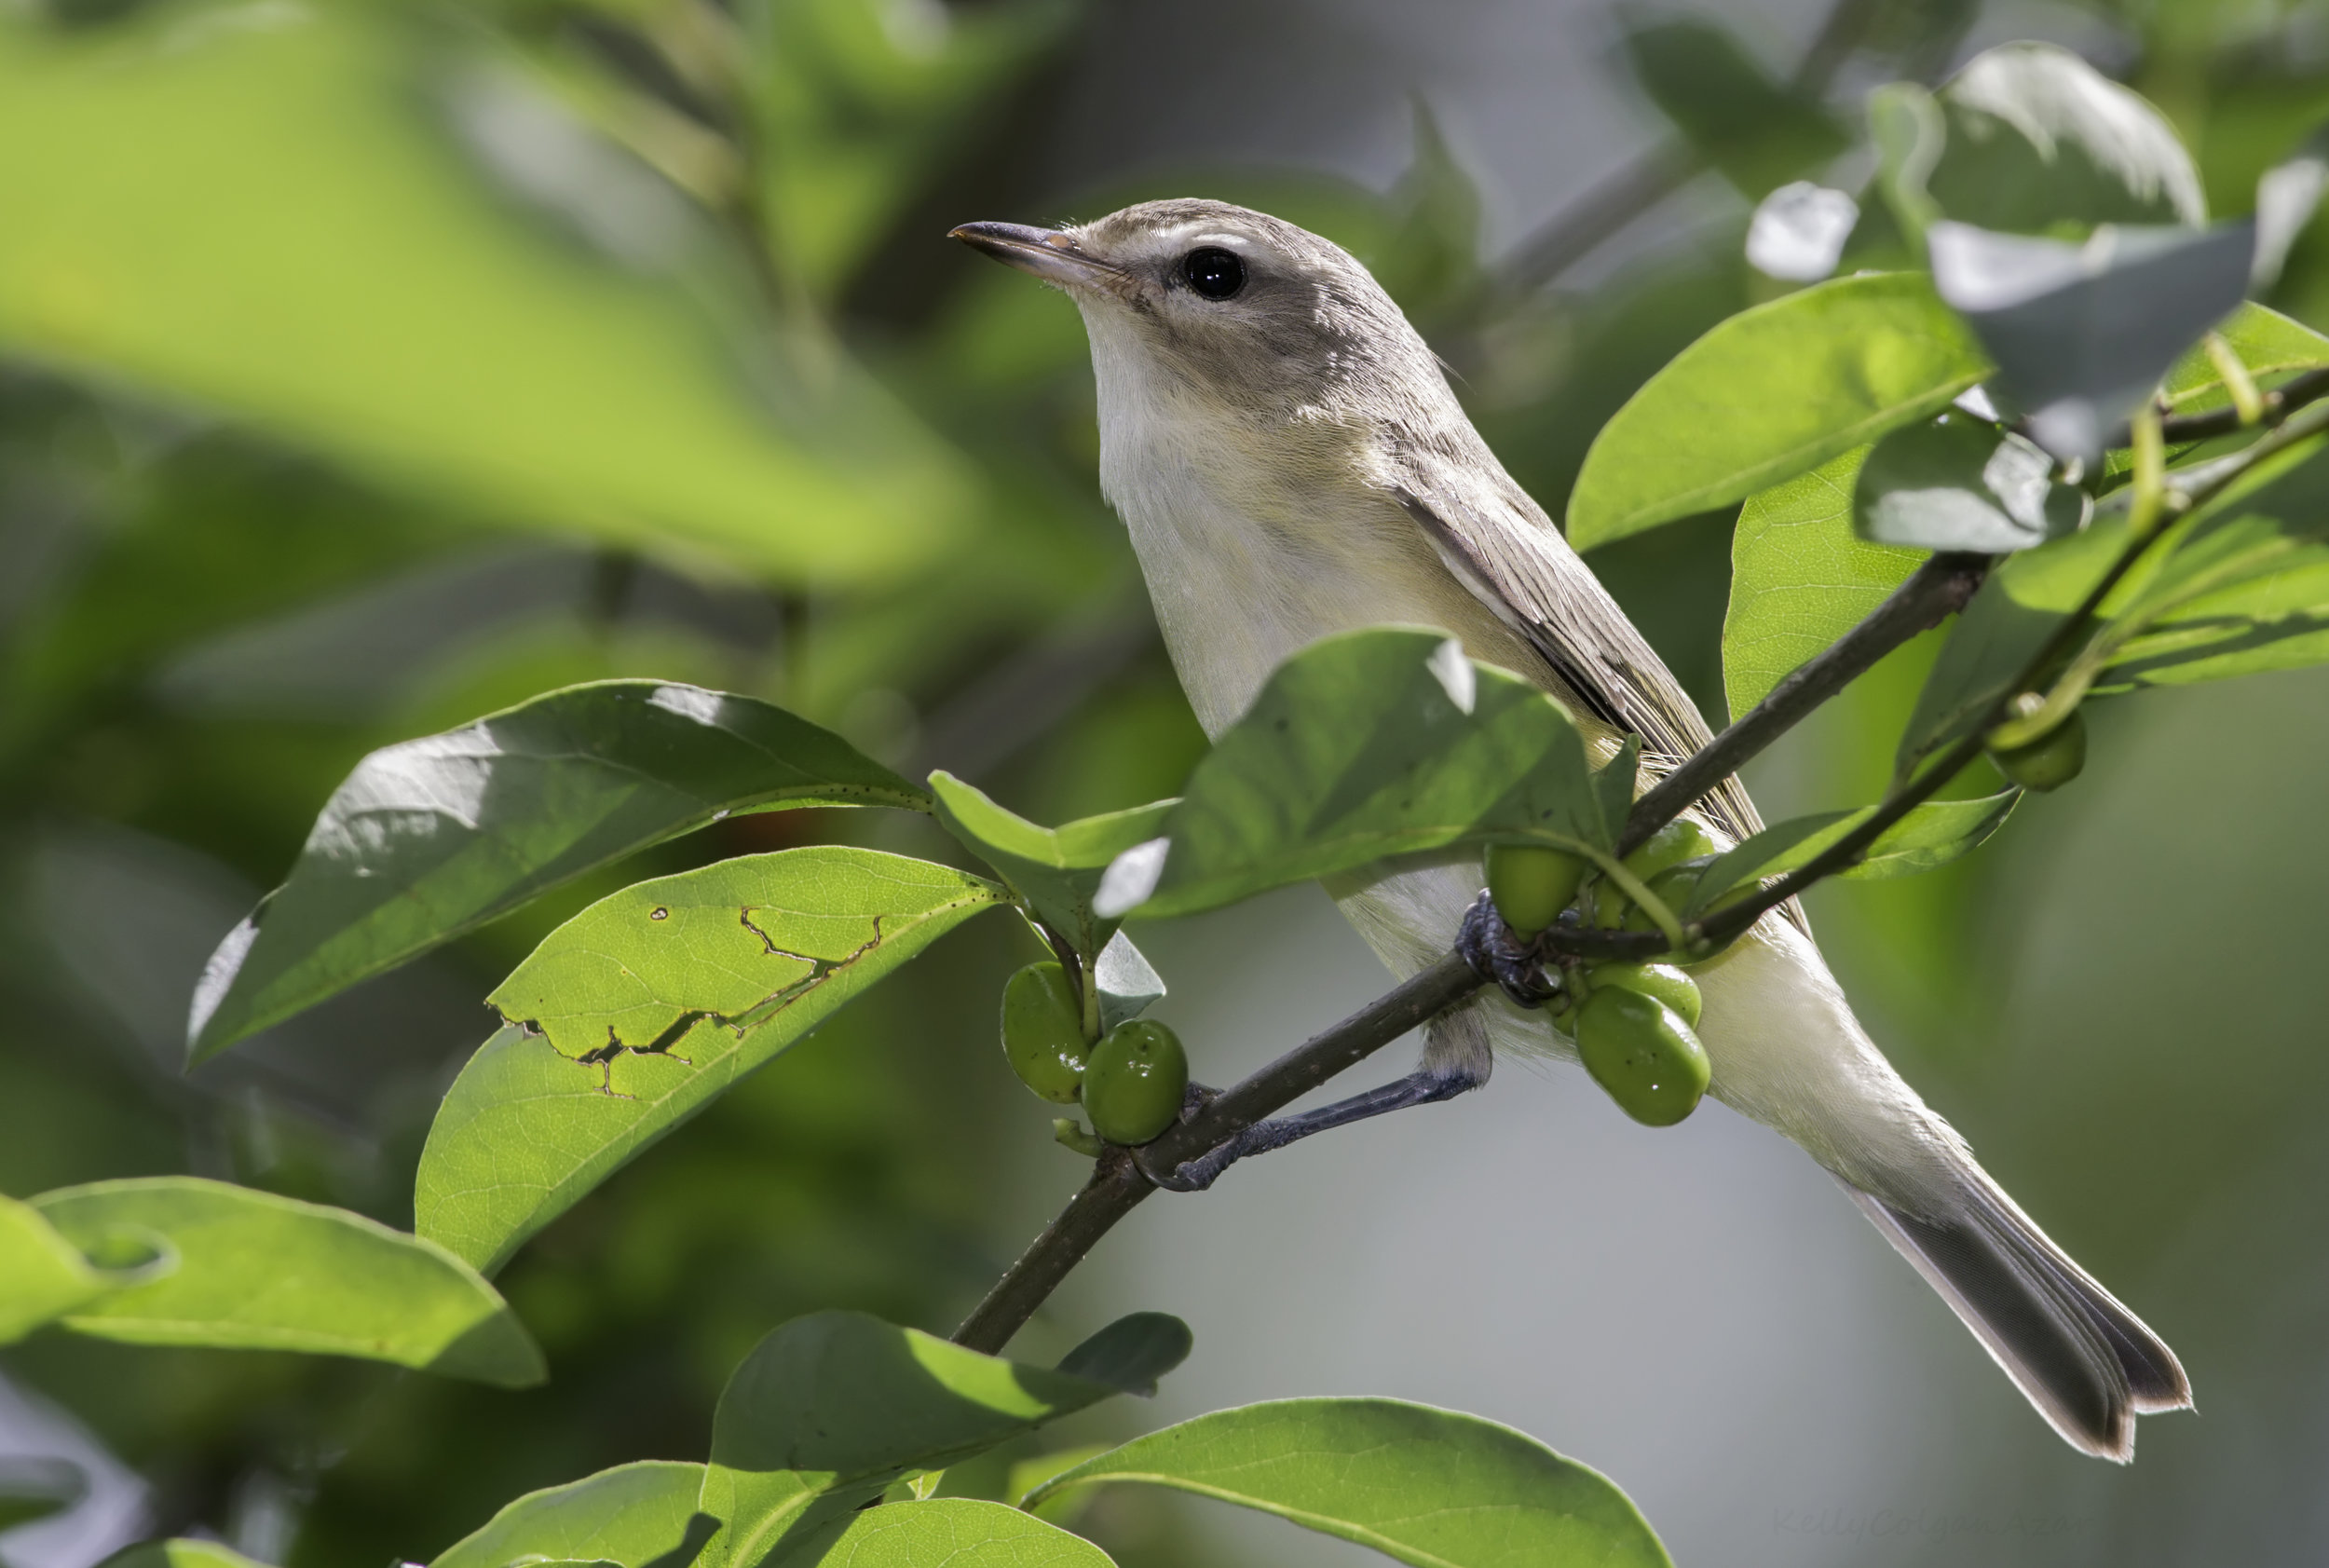 - Warbling Vireo (Vireo gilvus)Warbling Vireos live in deciduous and mixed woods. Their diet consists of insects such as butterflies and their larvae, beetles, and arachnids, and berries. Their wingspan is about 8.7 in. and they weigh 0.4-0.6 oz. Like their name suggests, the Warbling Vireo's song is warbled, and ends with a higher pitched note than the rest. They are protected on the US Migratory Bird list.Photo Credits: Kelly Colgan Azar